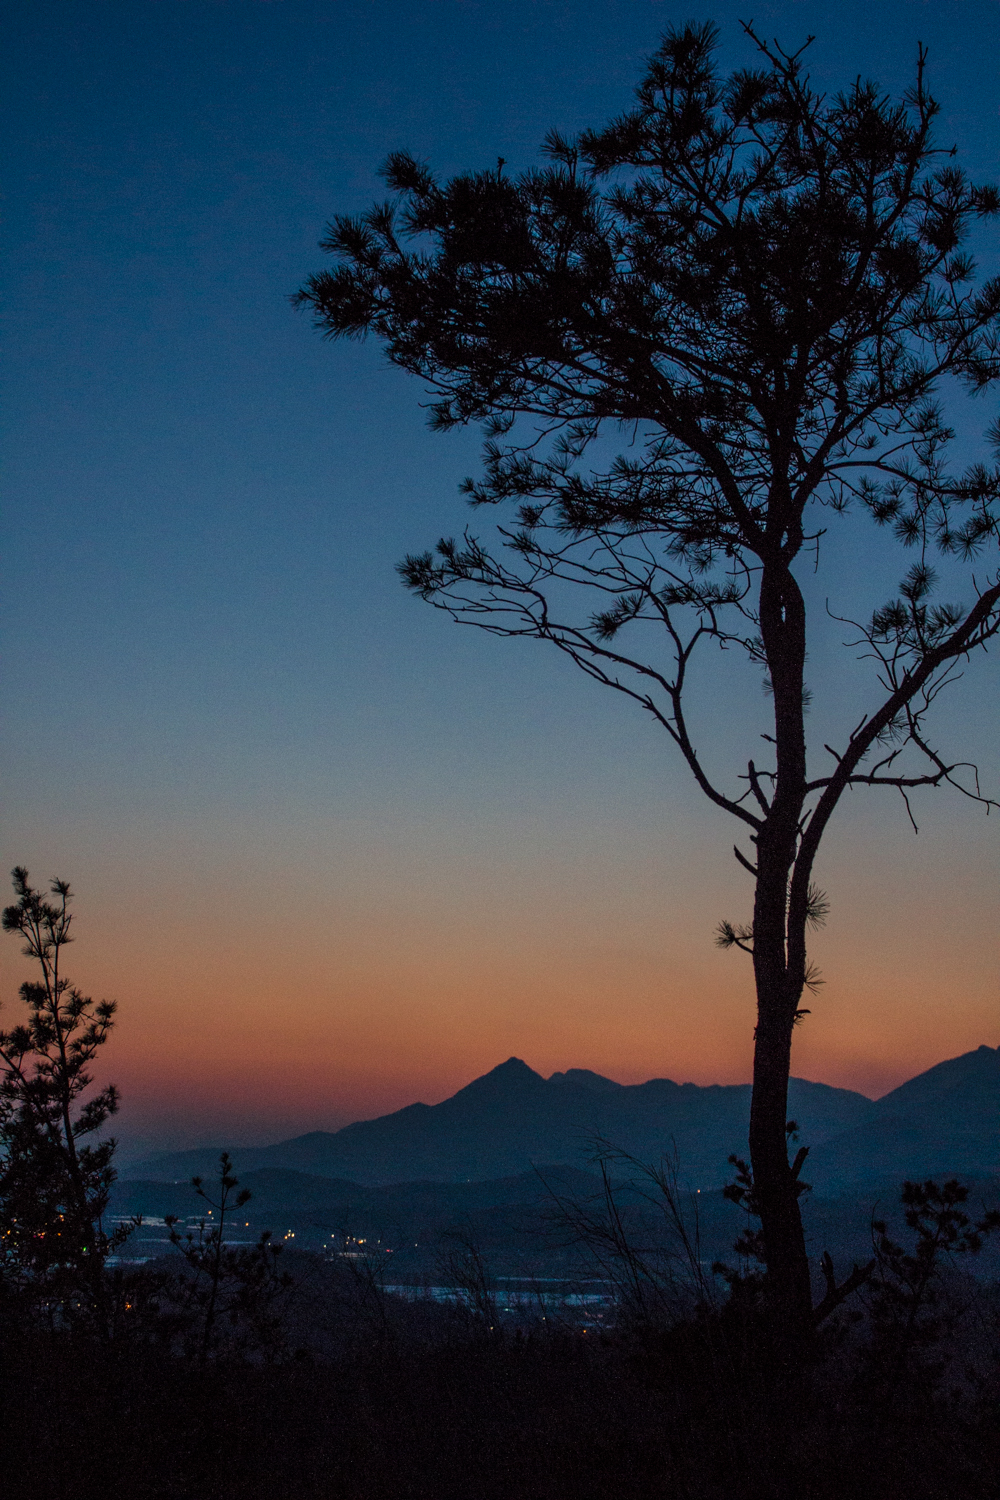 From the top of the mountain inside Daenamugol during the blue hour. The lights of Damyang peek through the mists.